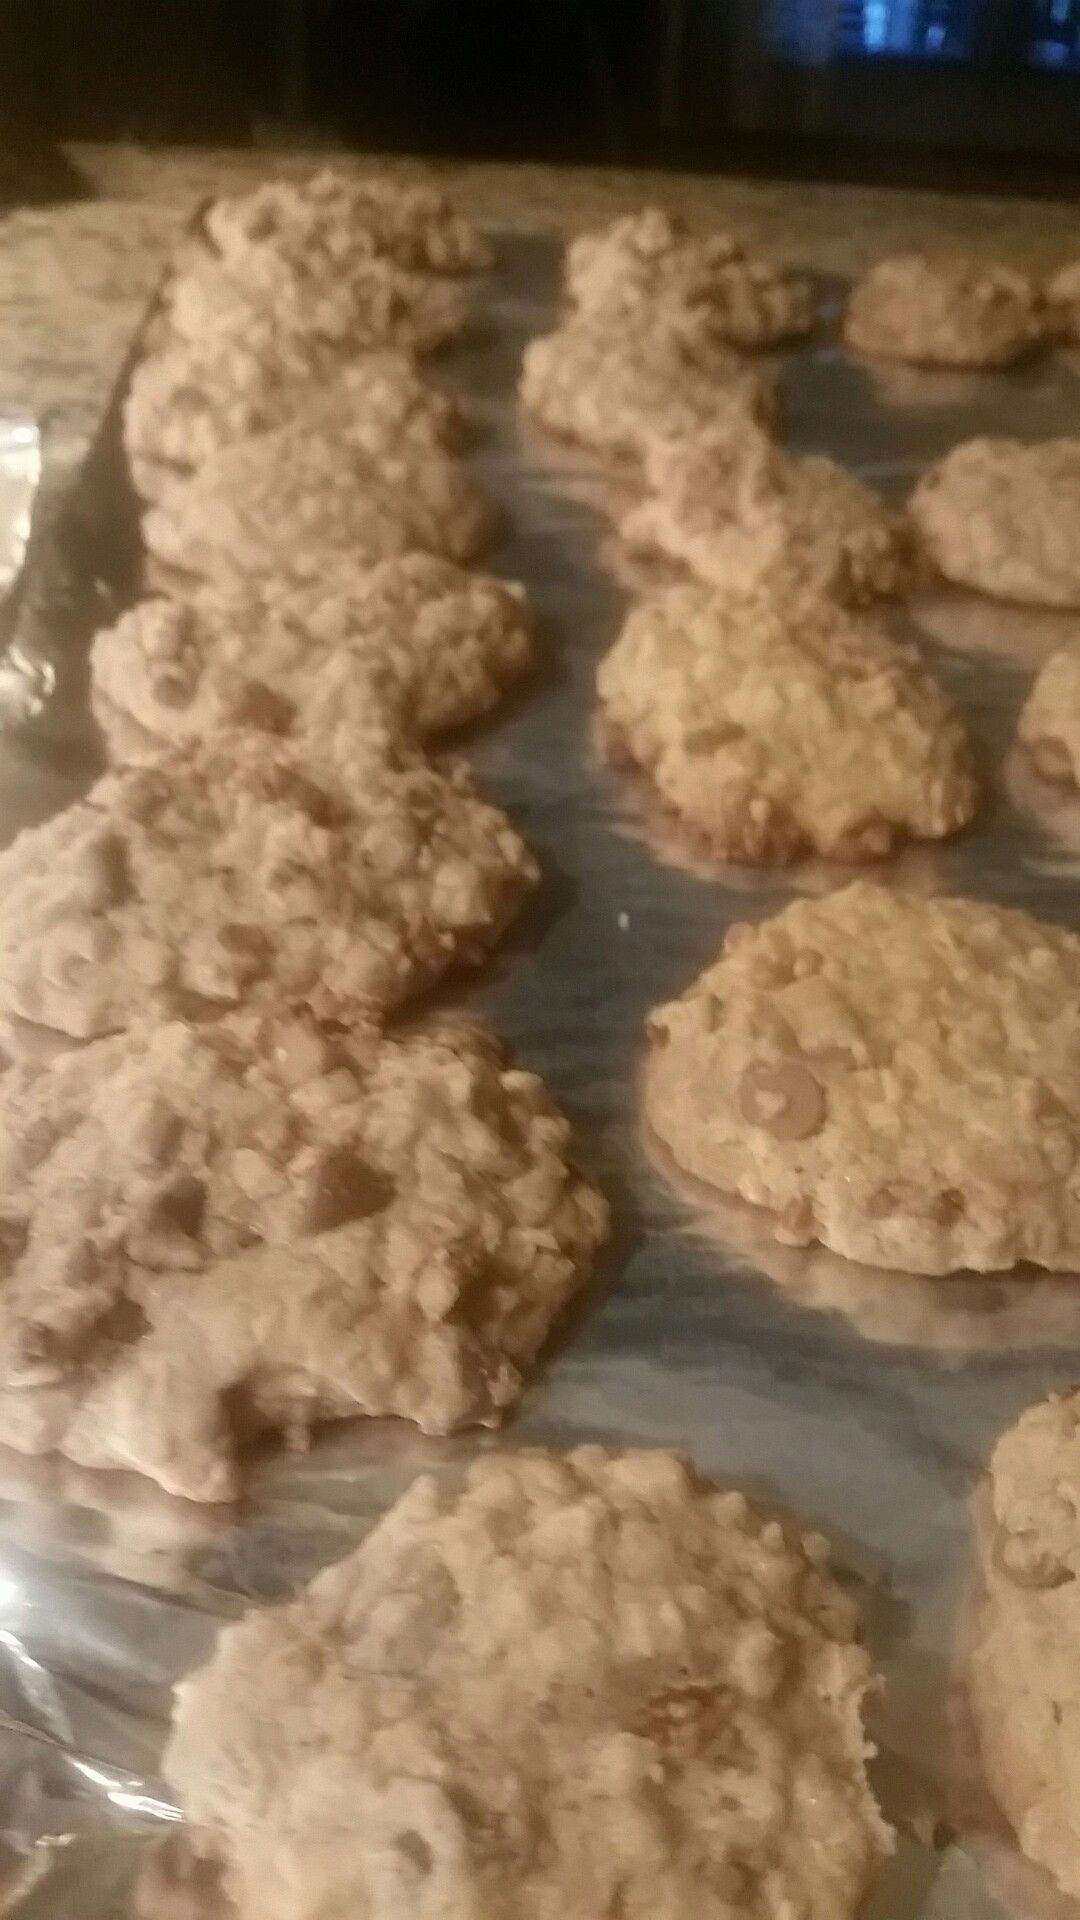 Ottie S Welcome To My World Bestever Cookies Butter Pecan Cake Mix 1 Egg 2 Sticks Melted Butter 2 Tbsp Butter Pecan Butter Pecan Cake Instant Oats